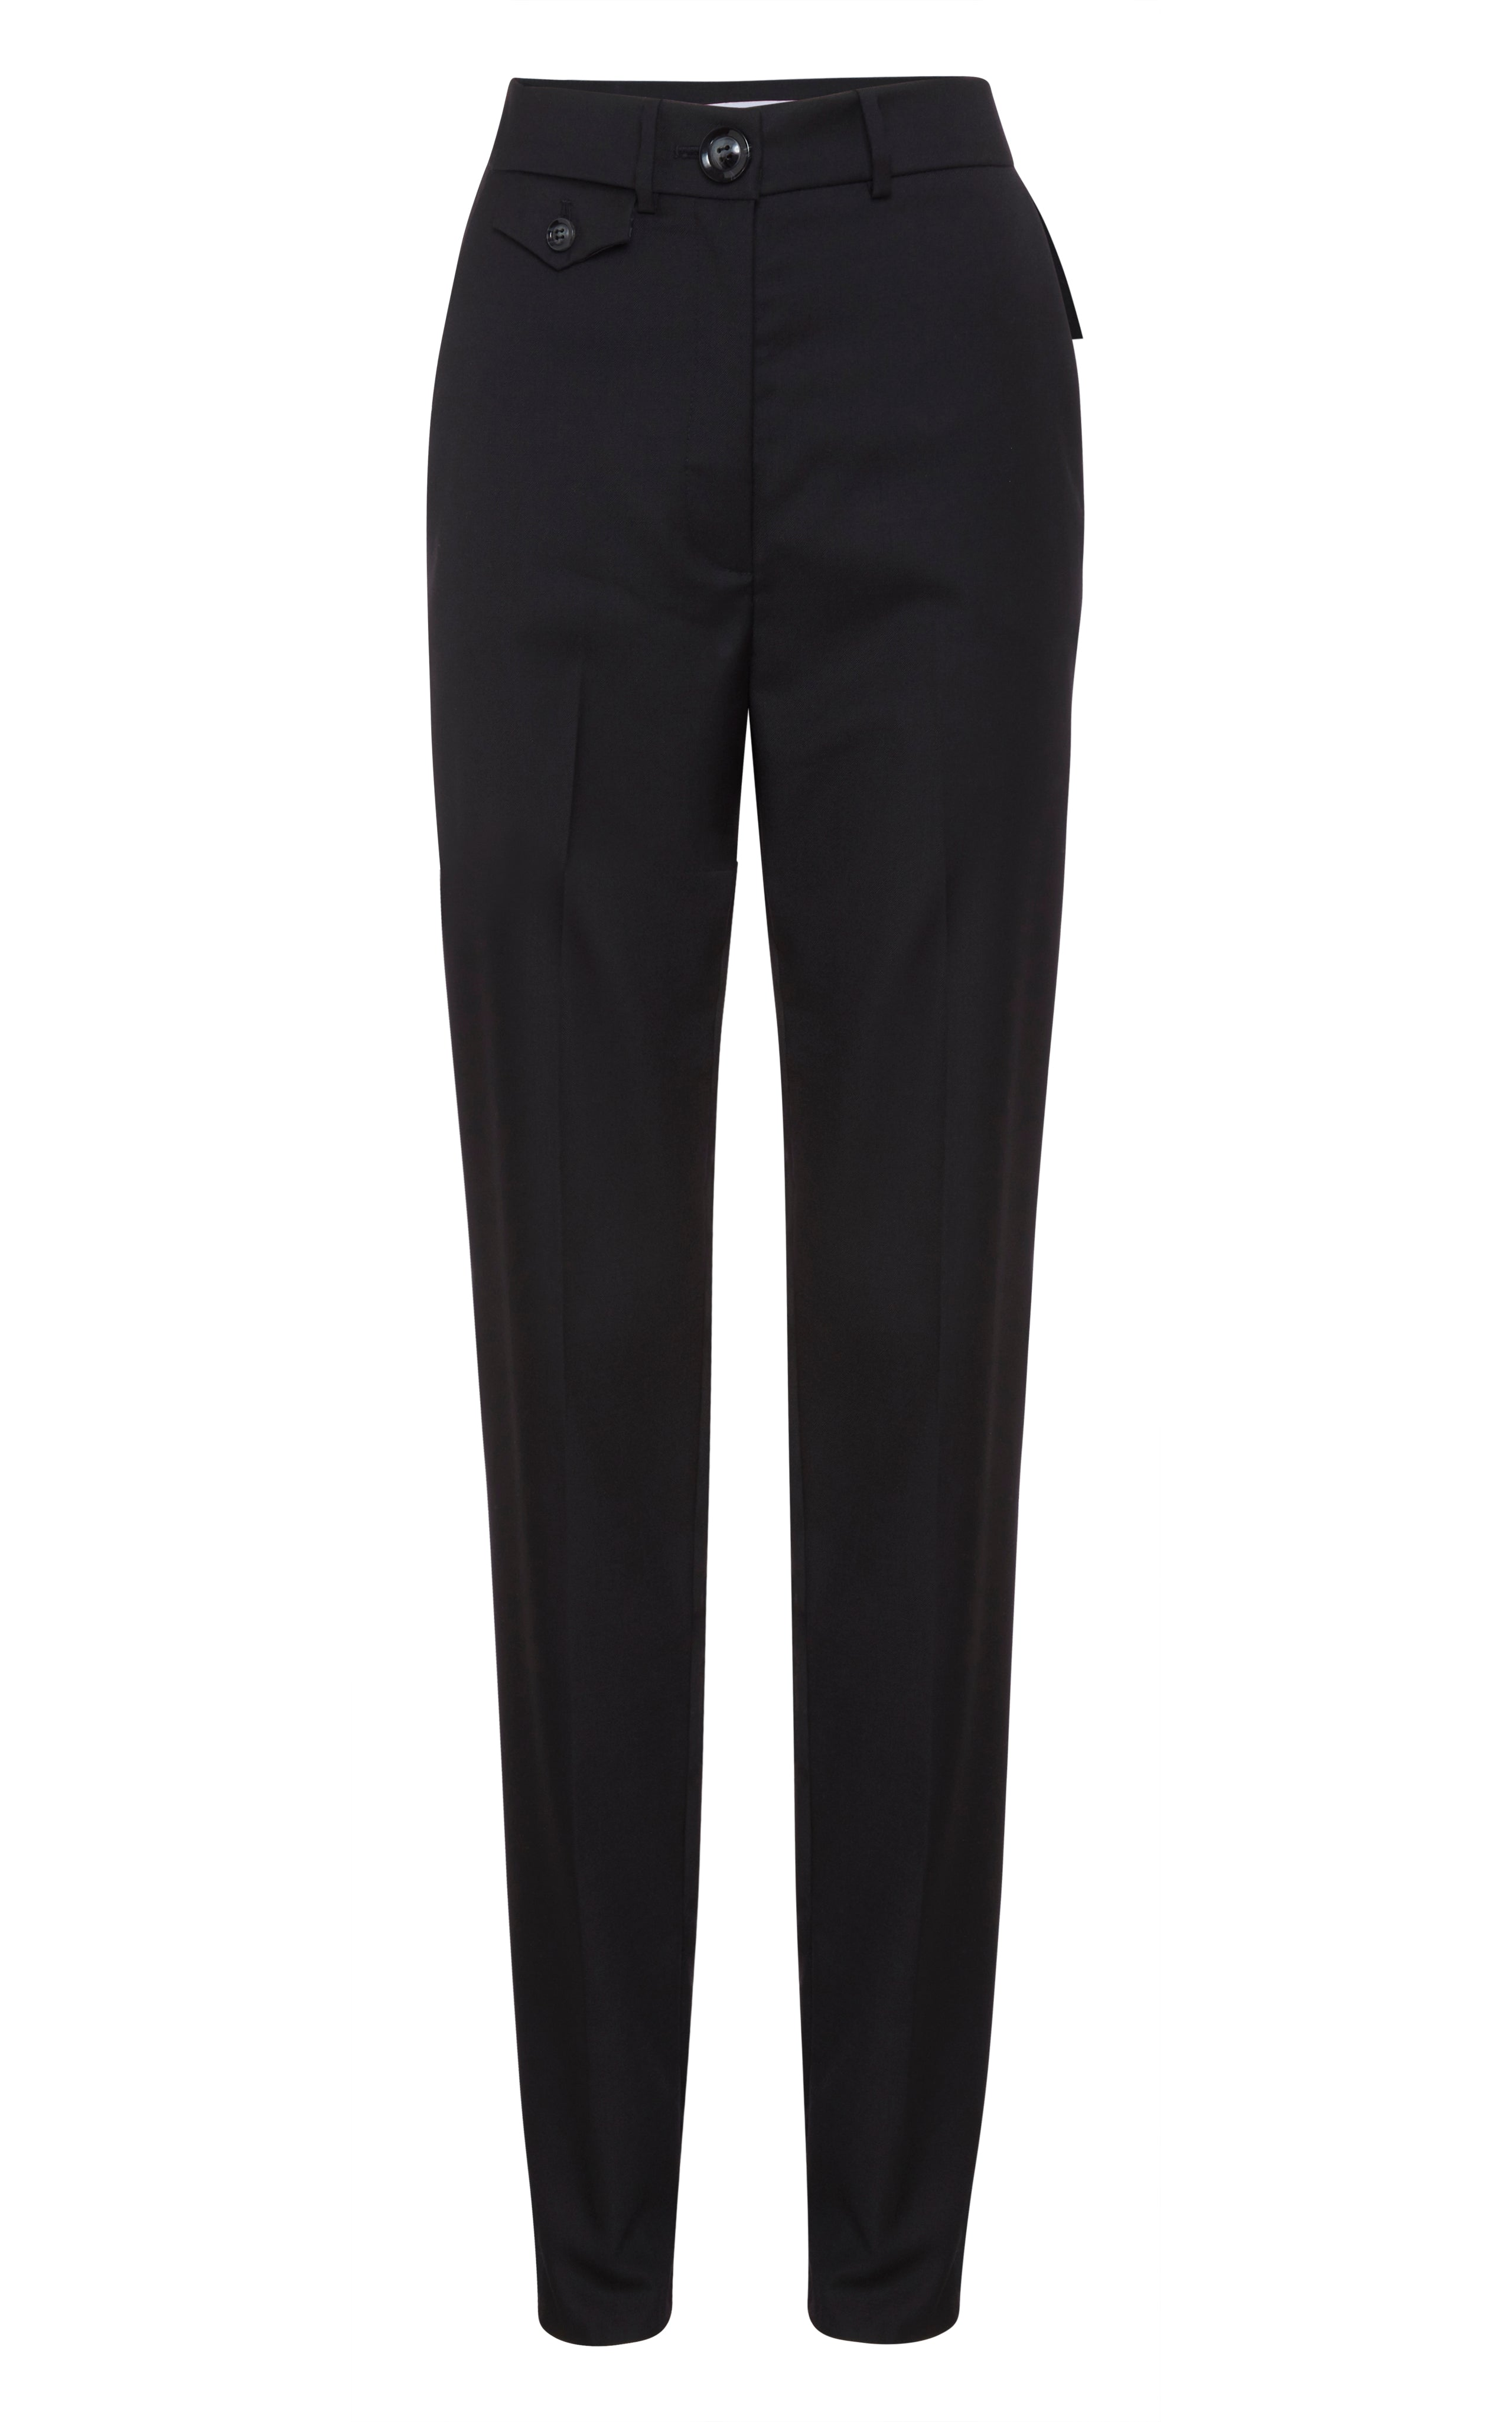 ROXY Pants (BLACK)